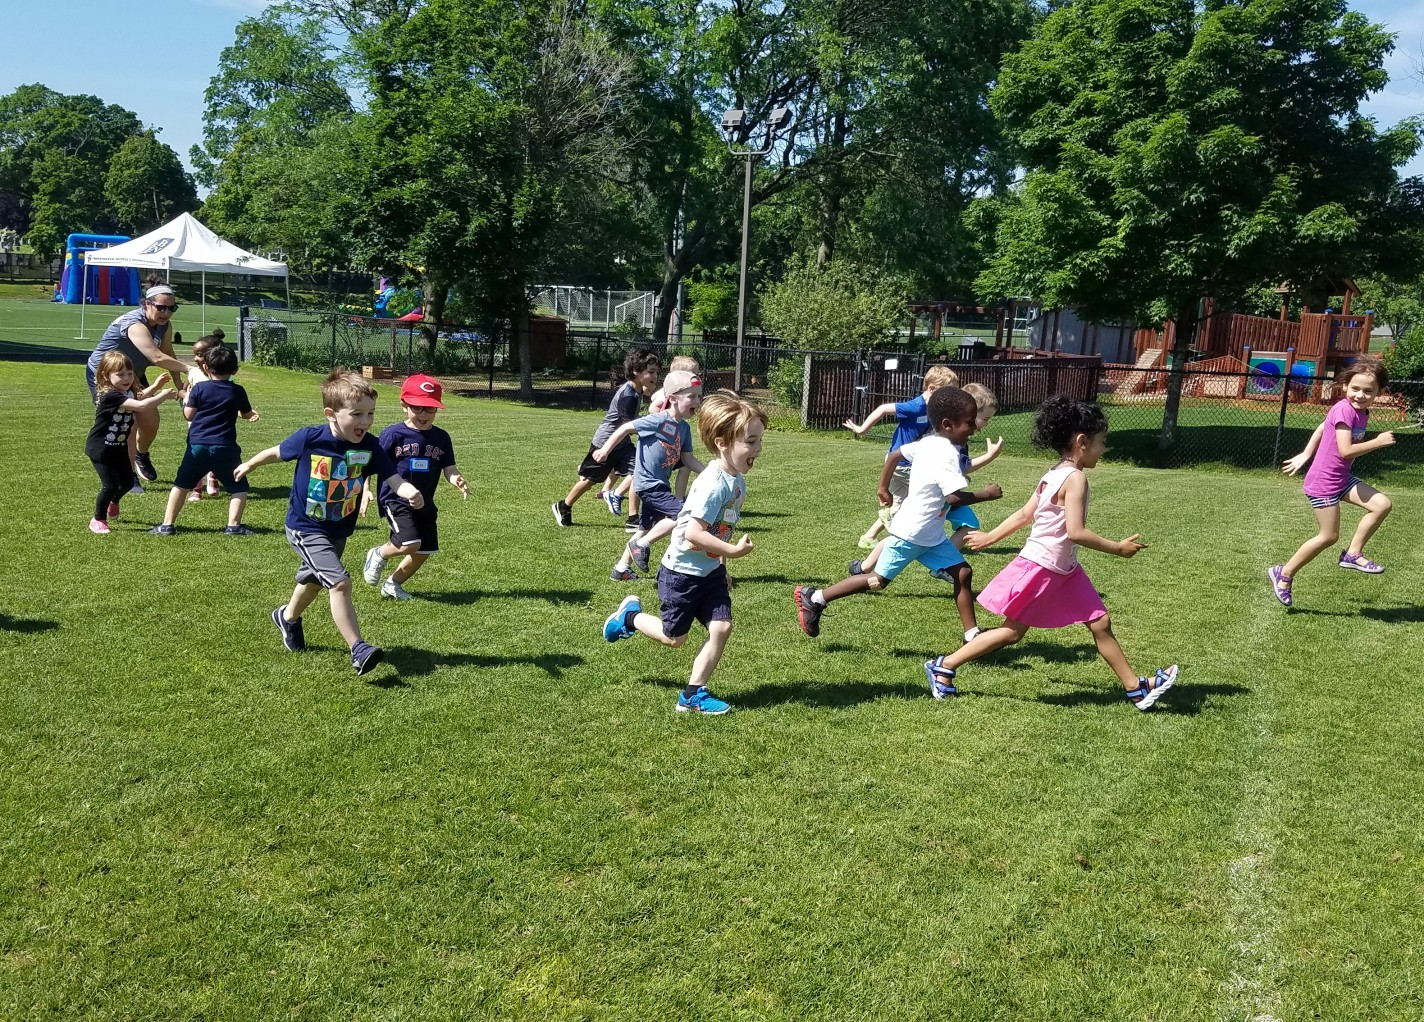 Children running accross a field